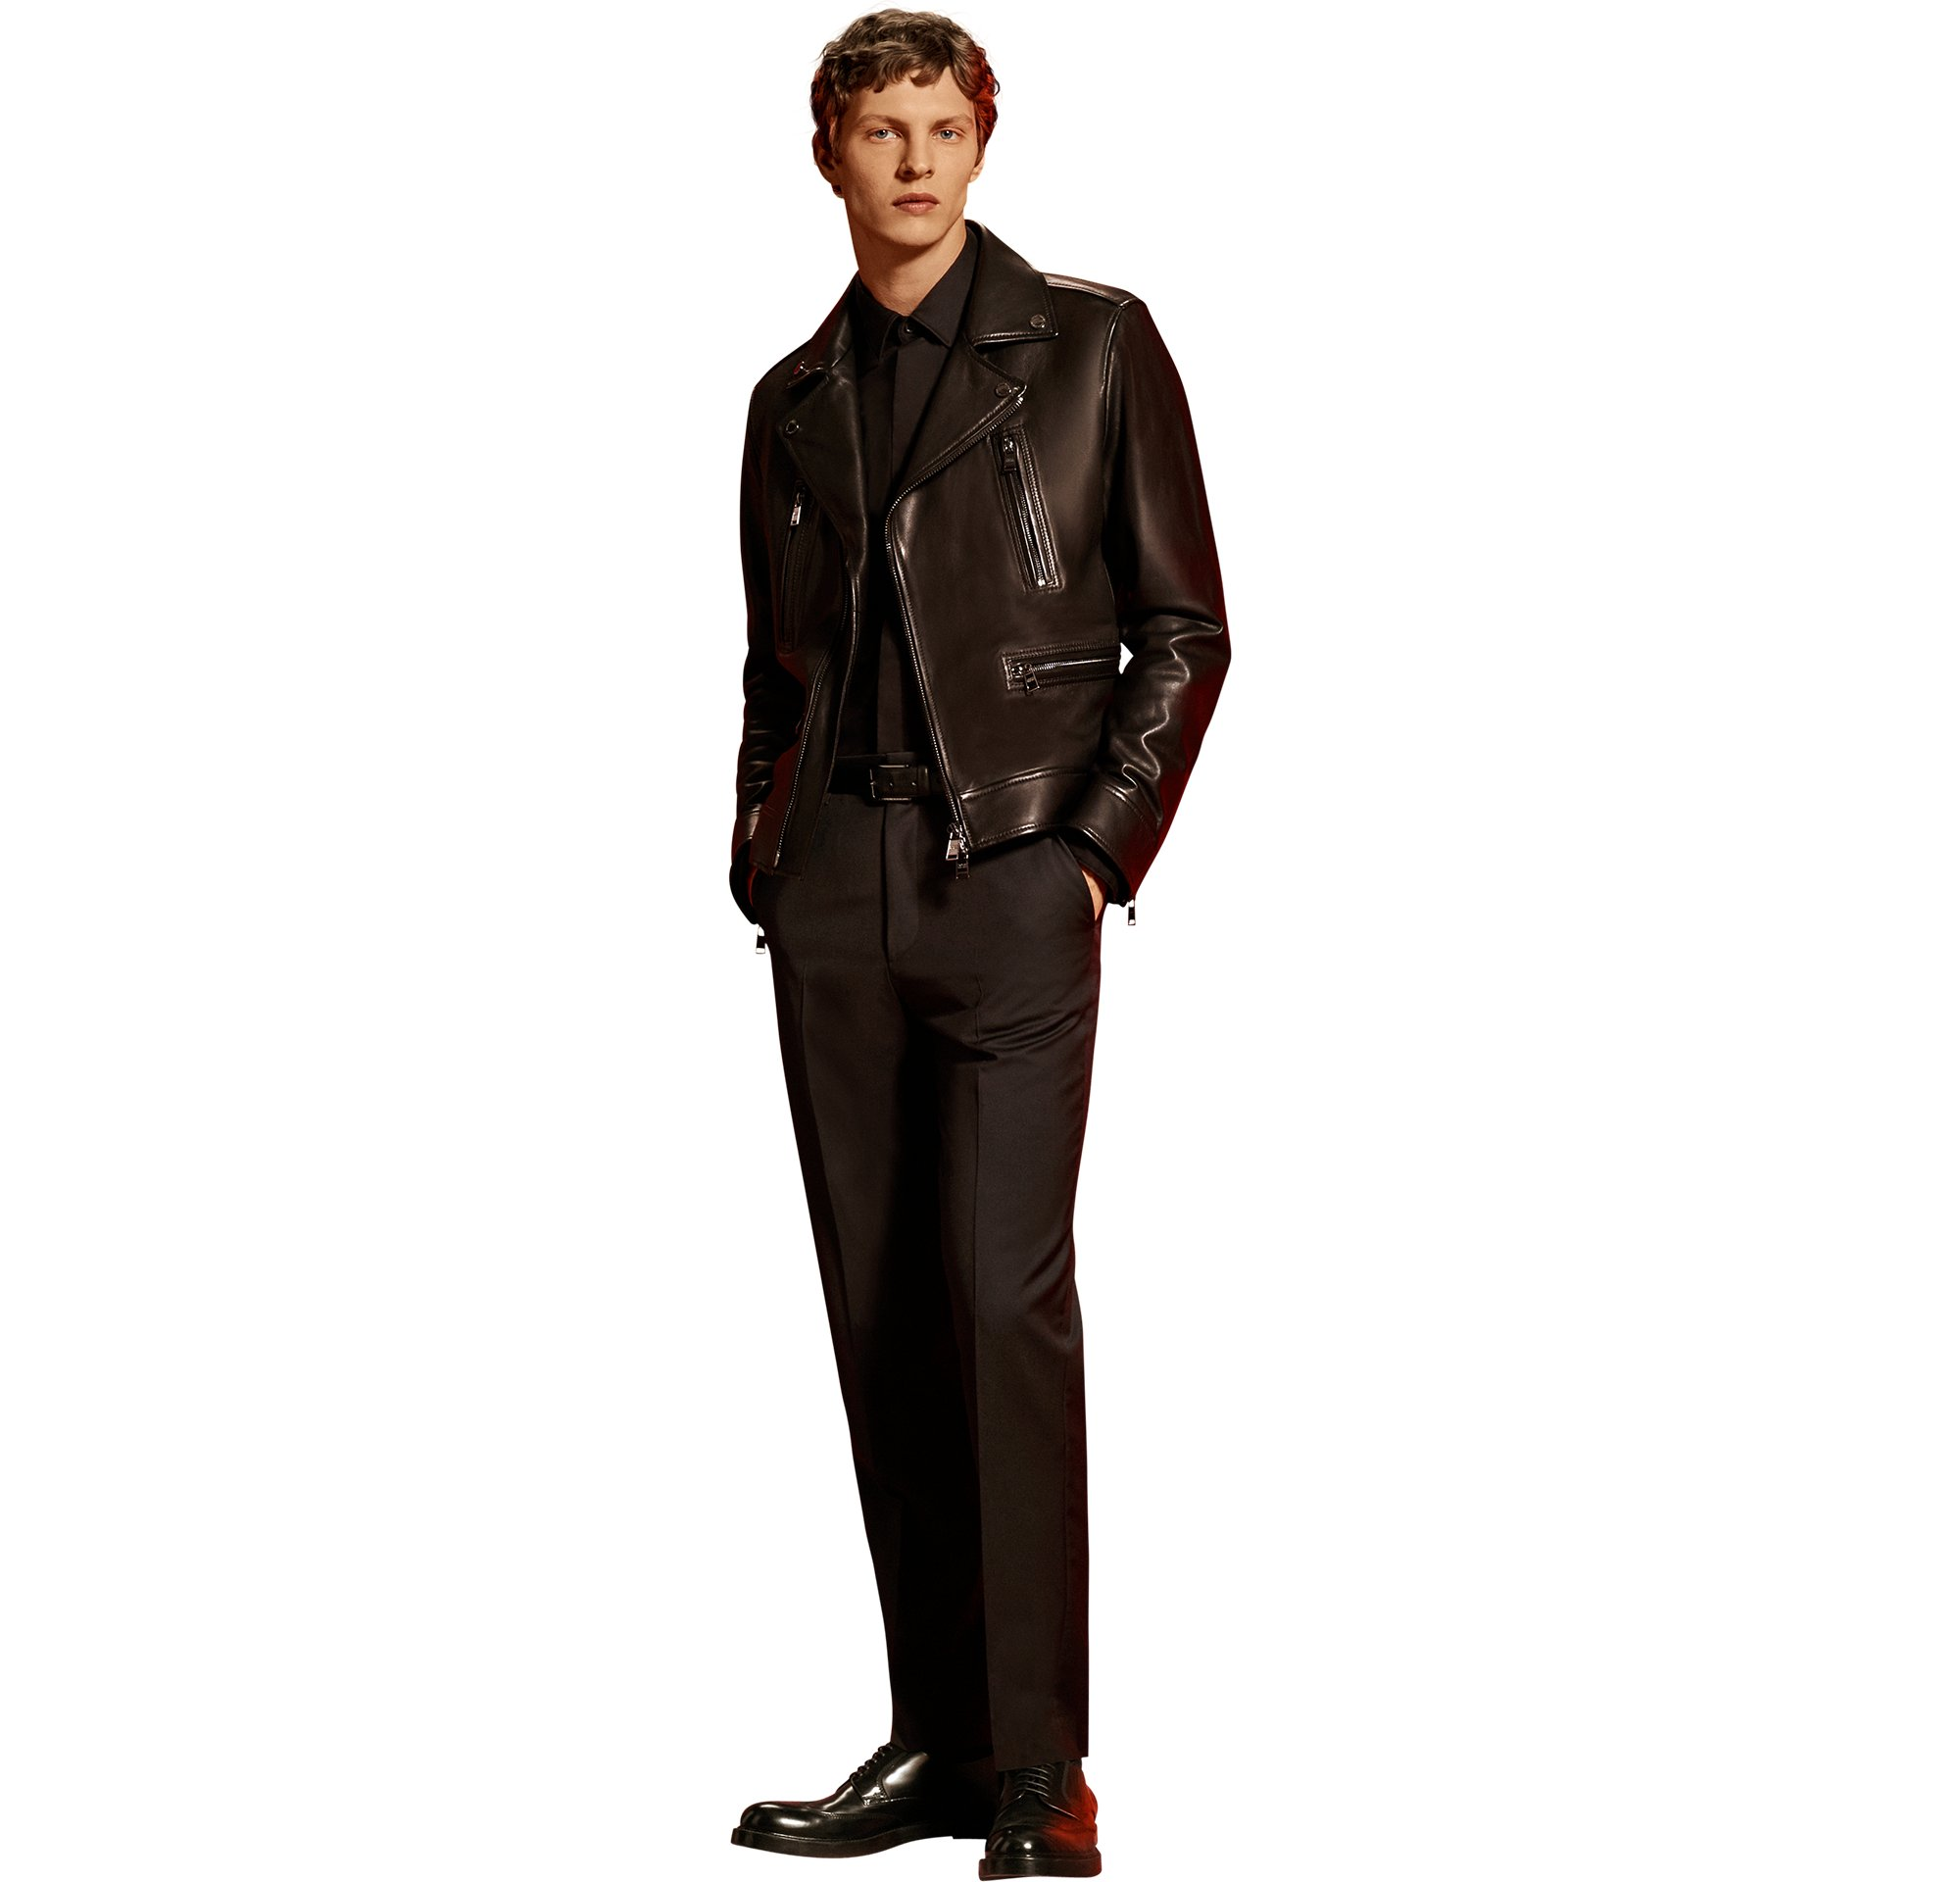 CTG_BOSS_Men_PS18_Look_6,